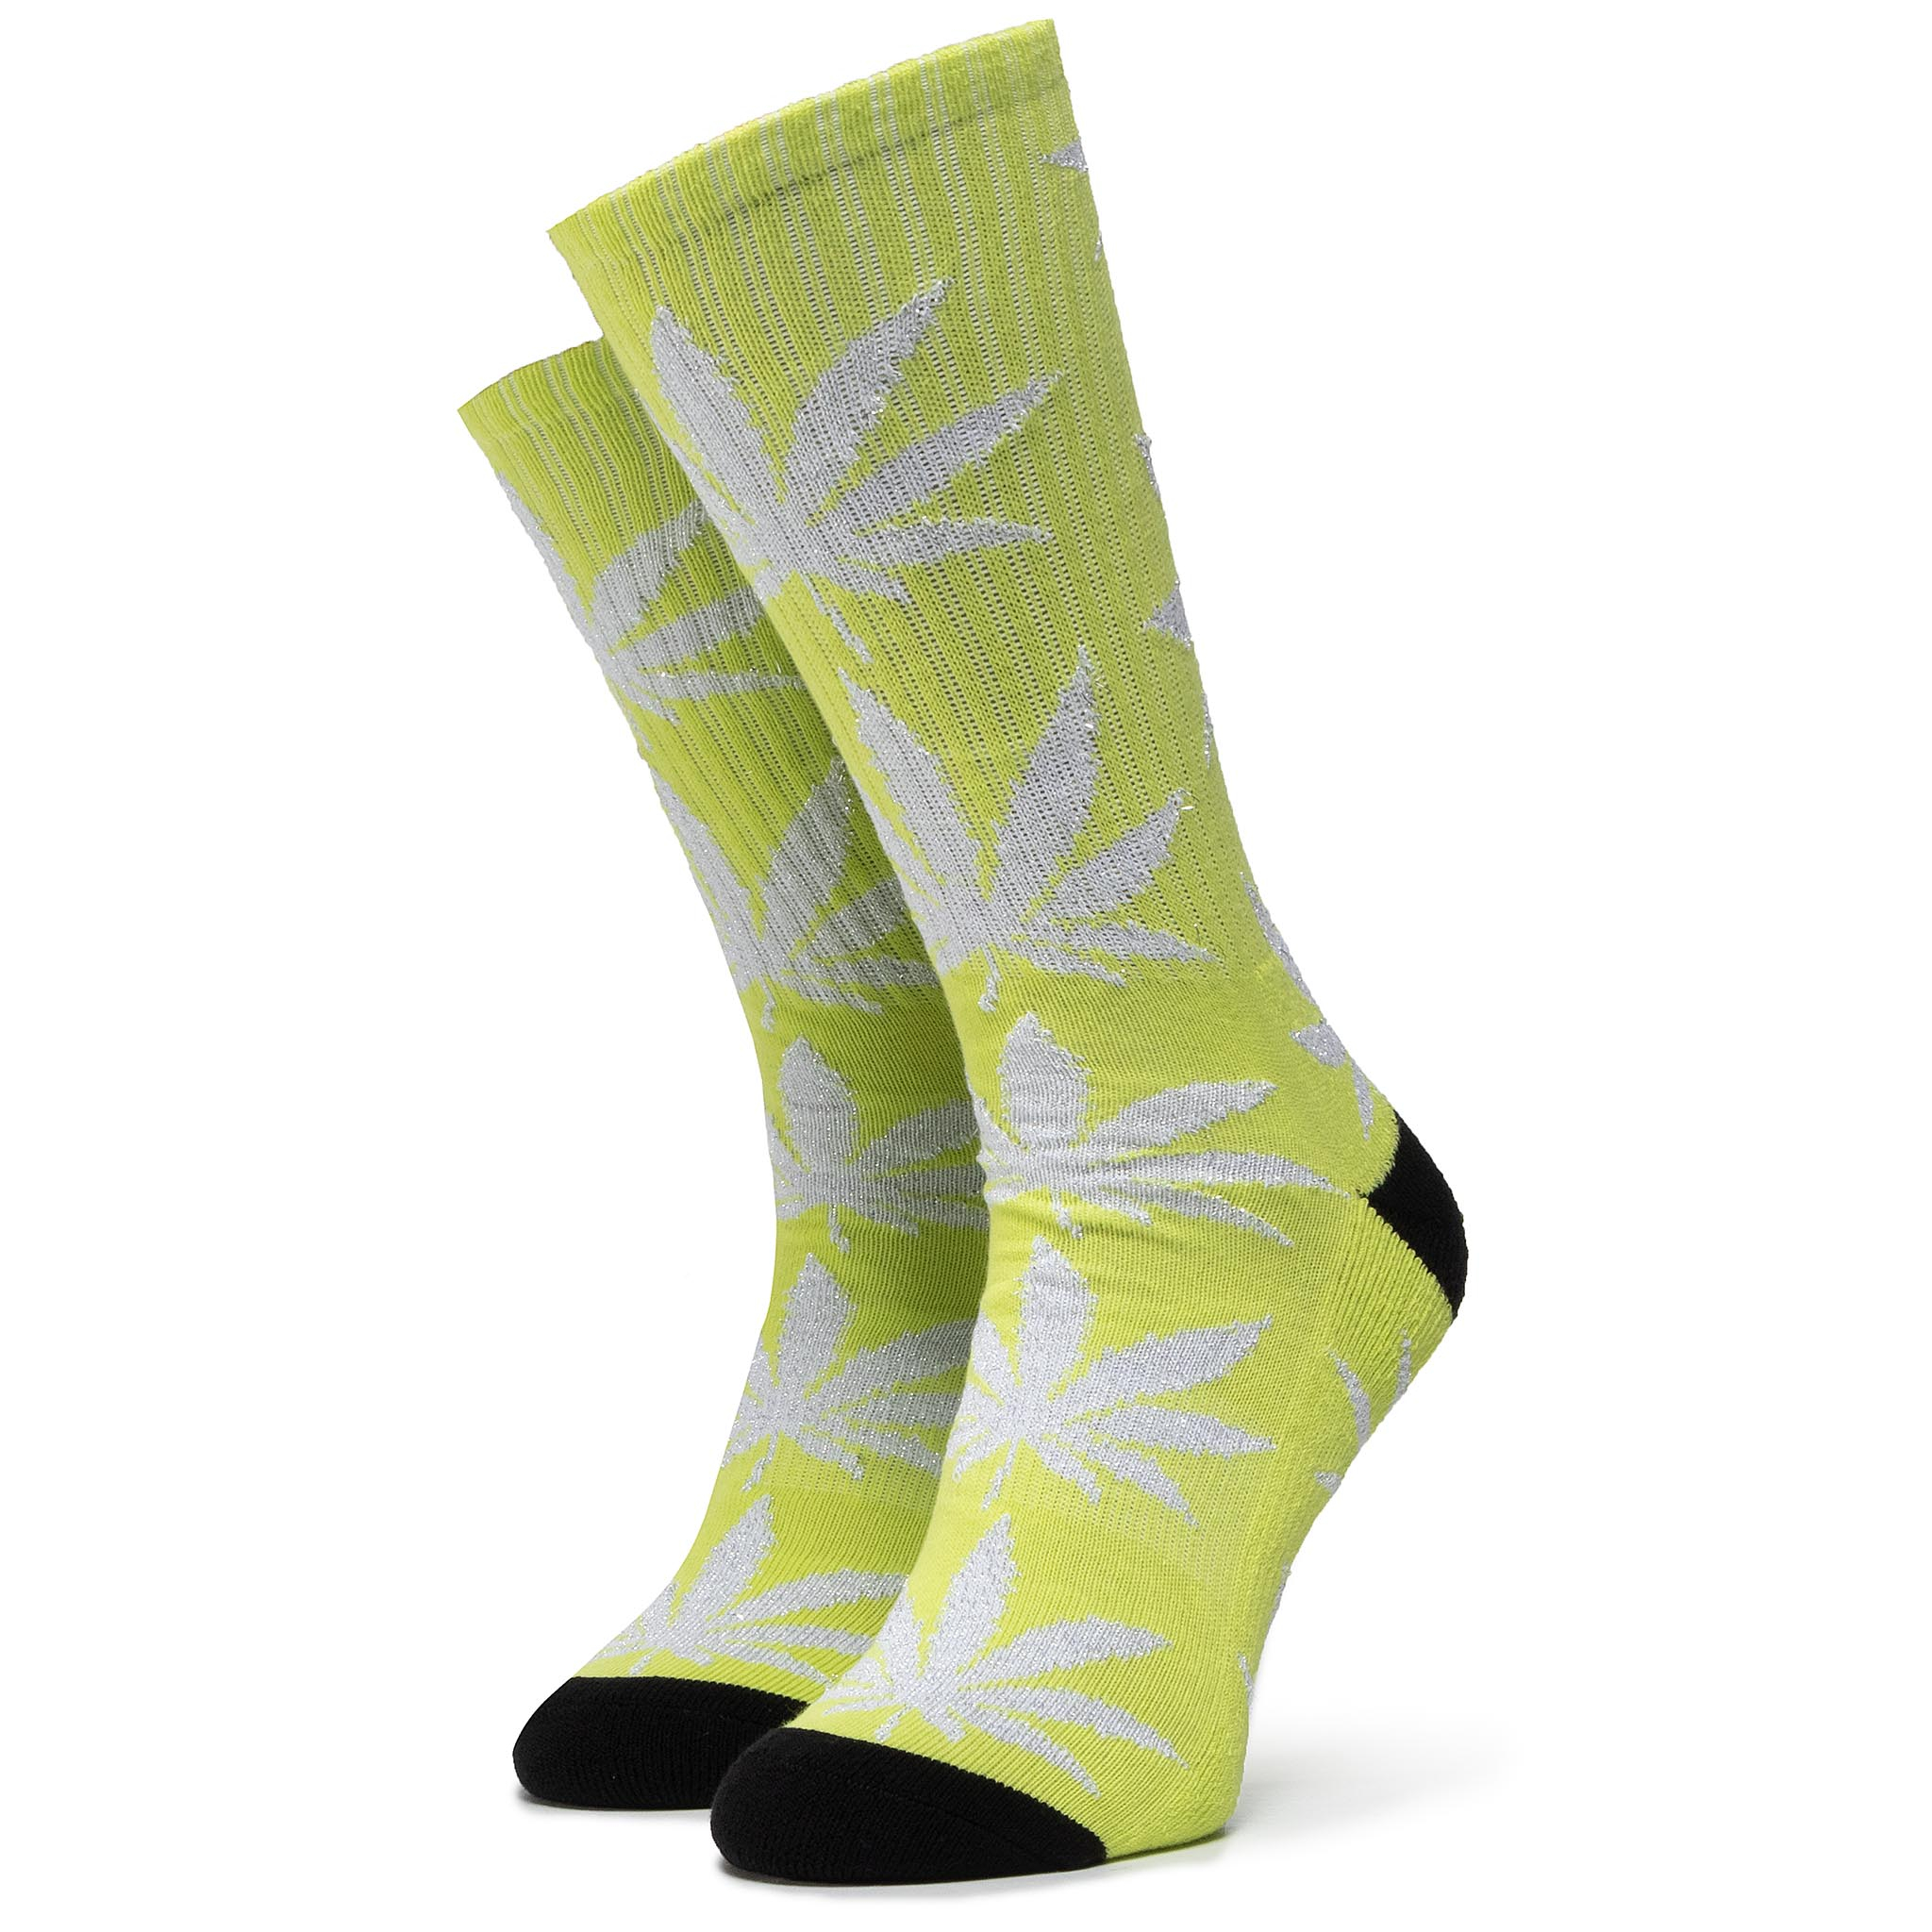 Șosete Lungi De Damă Huf - Plantlife Metallic Leaves Sock Sk00447 R.Os Hot Lime imagine epantofi.ro 2021